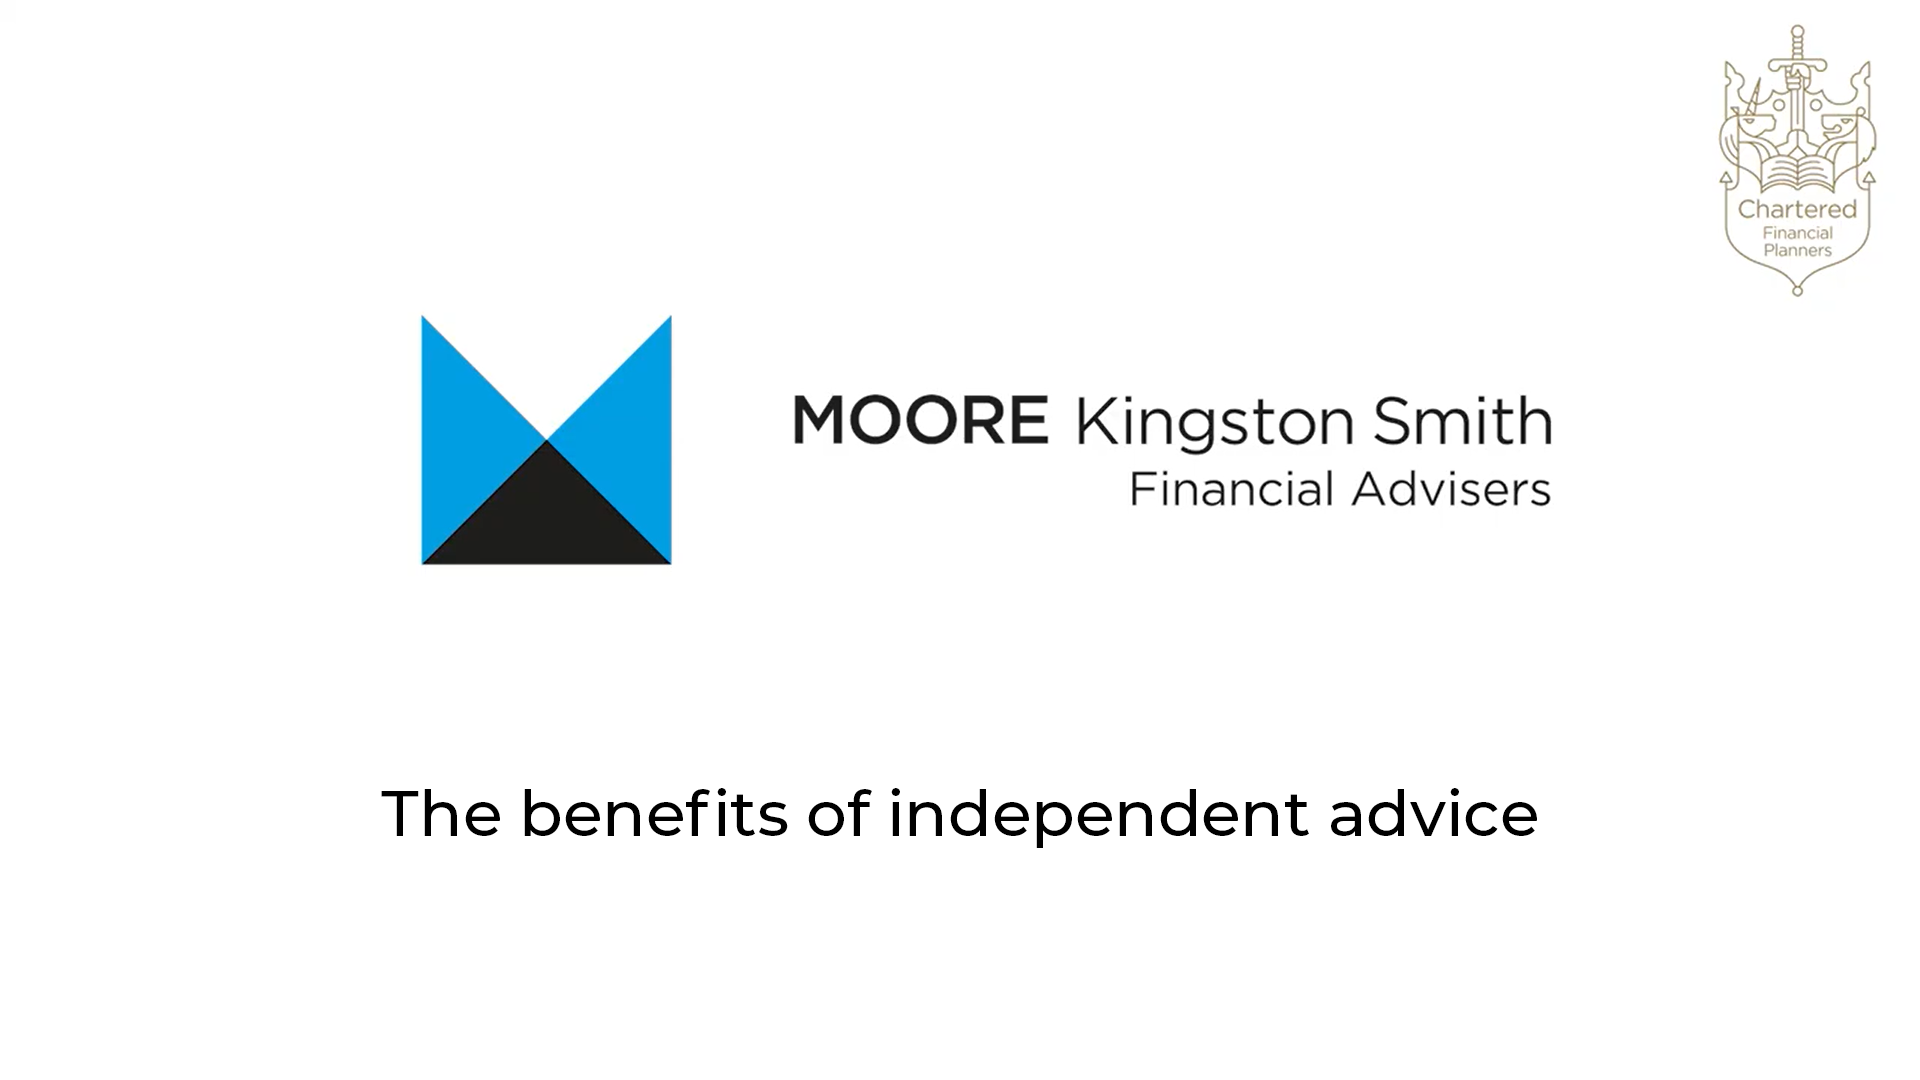 The benefits of independent advice